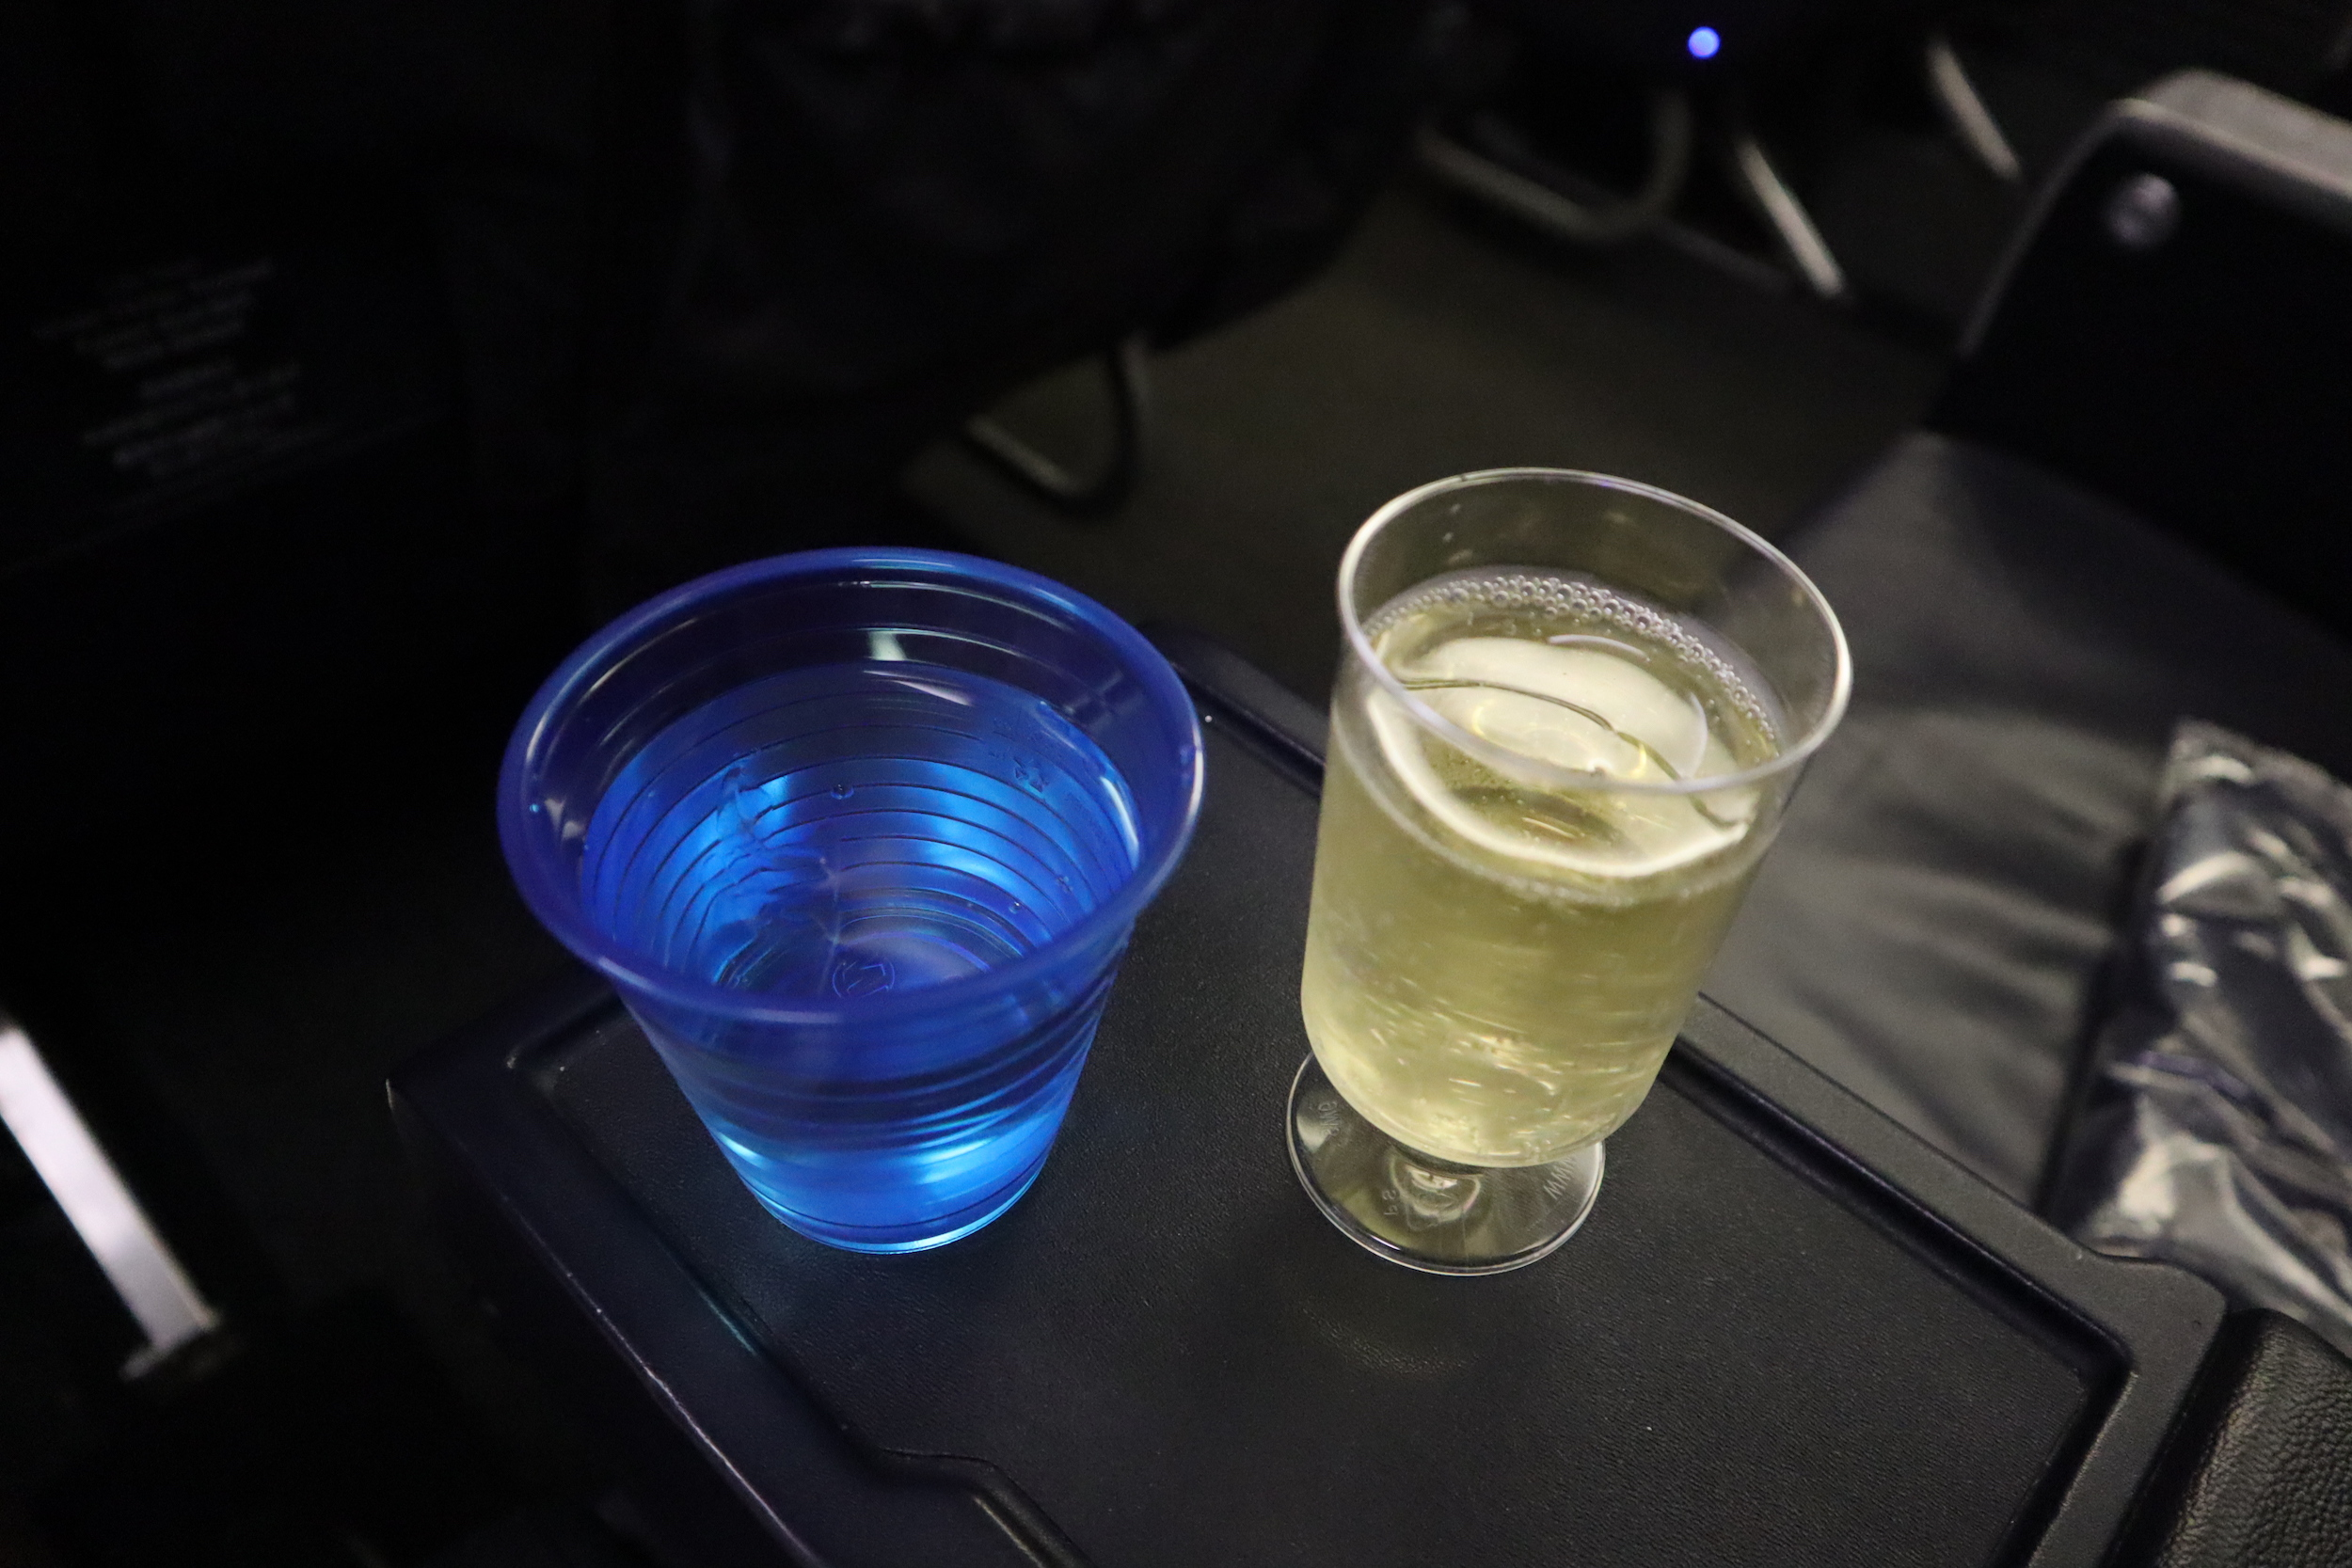 United 737 business class – Welcome drink